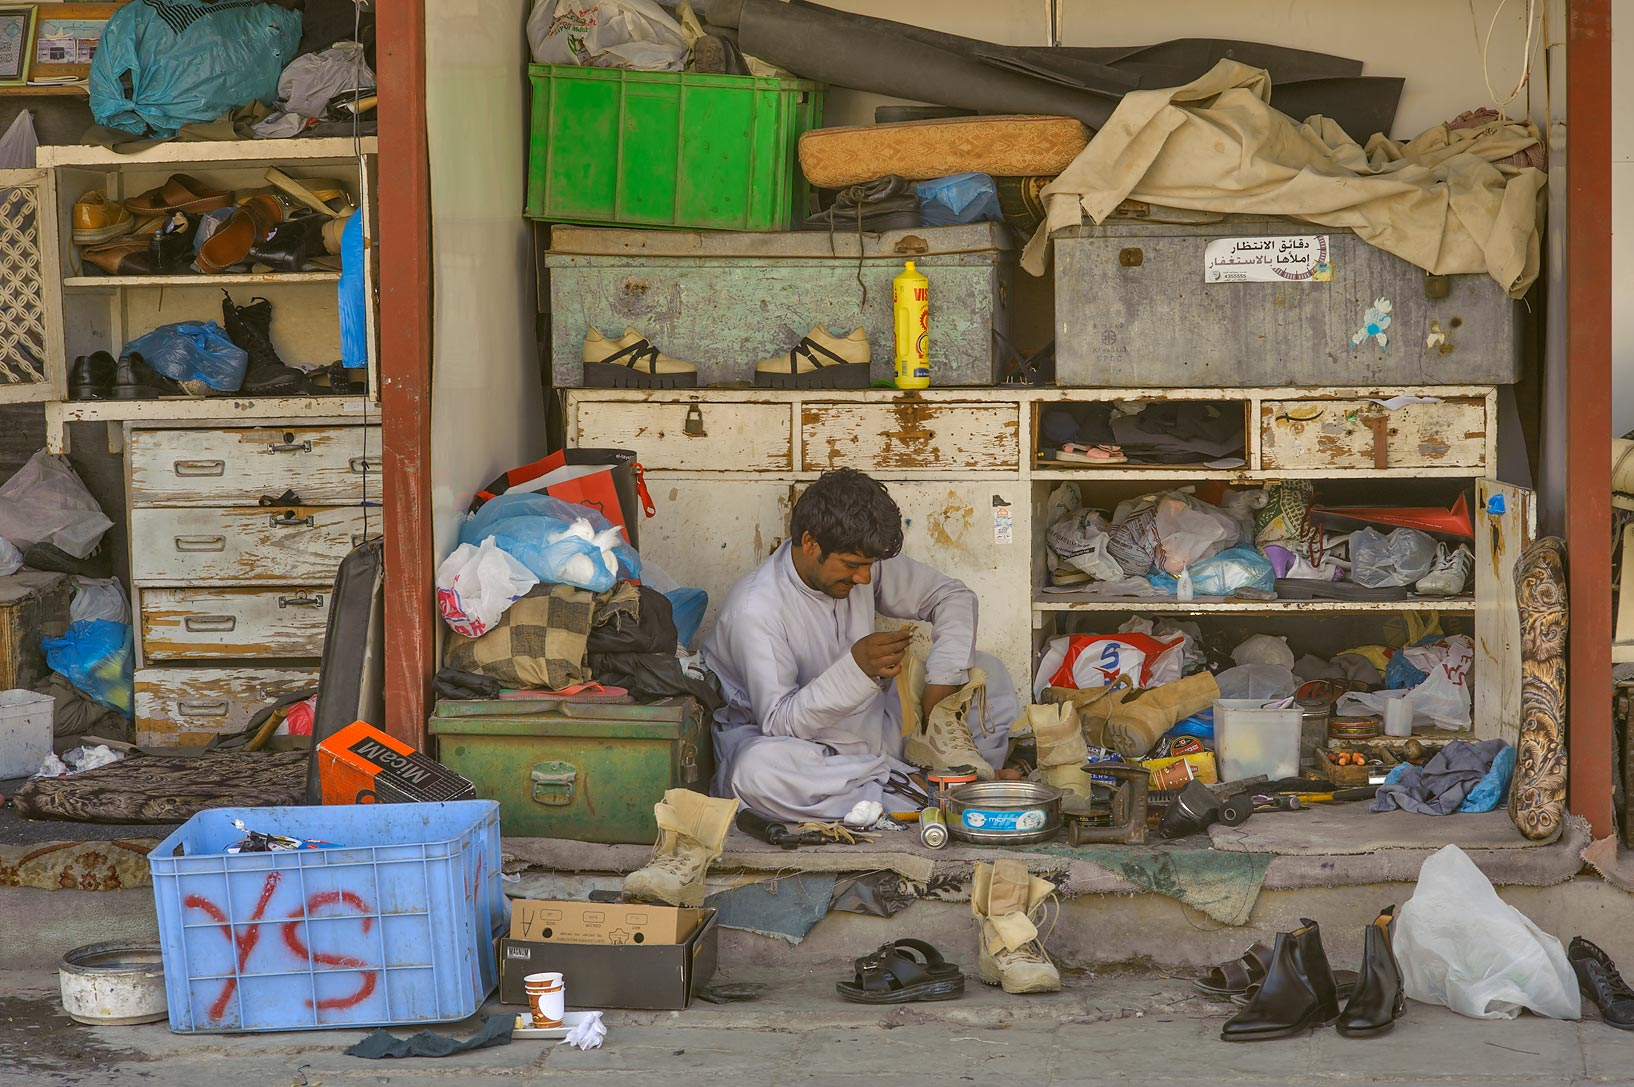 Repairing shoes in Souq Al Ali, near Immigration...Gharafa Interchange). Doha, Qatar